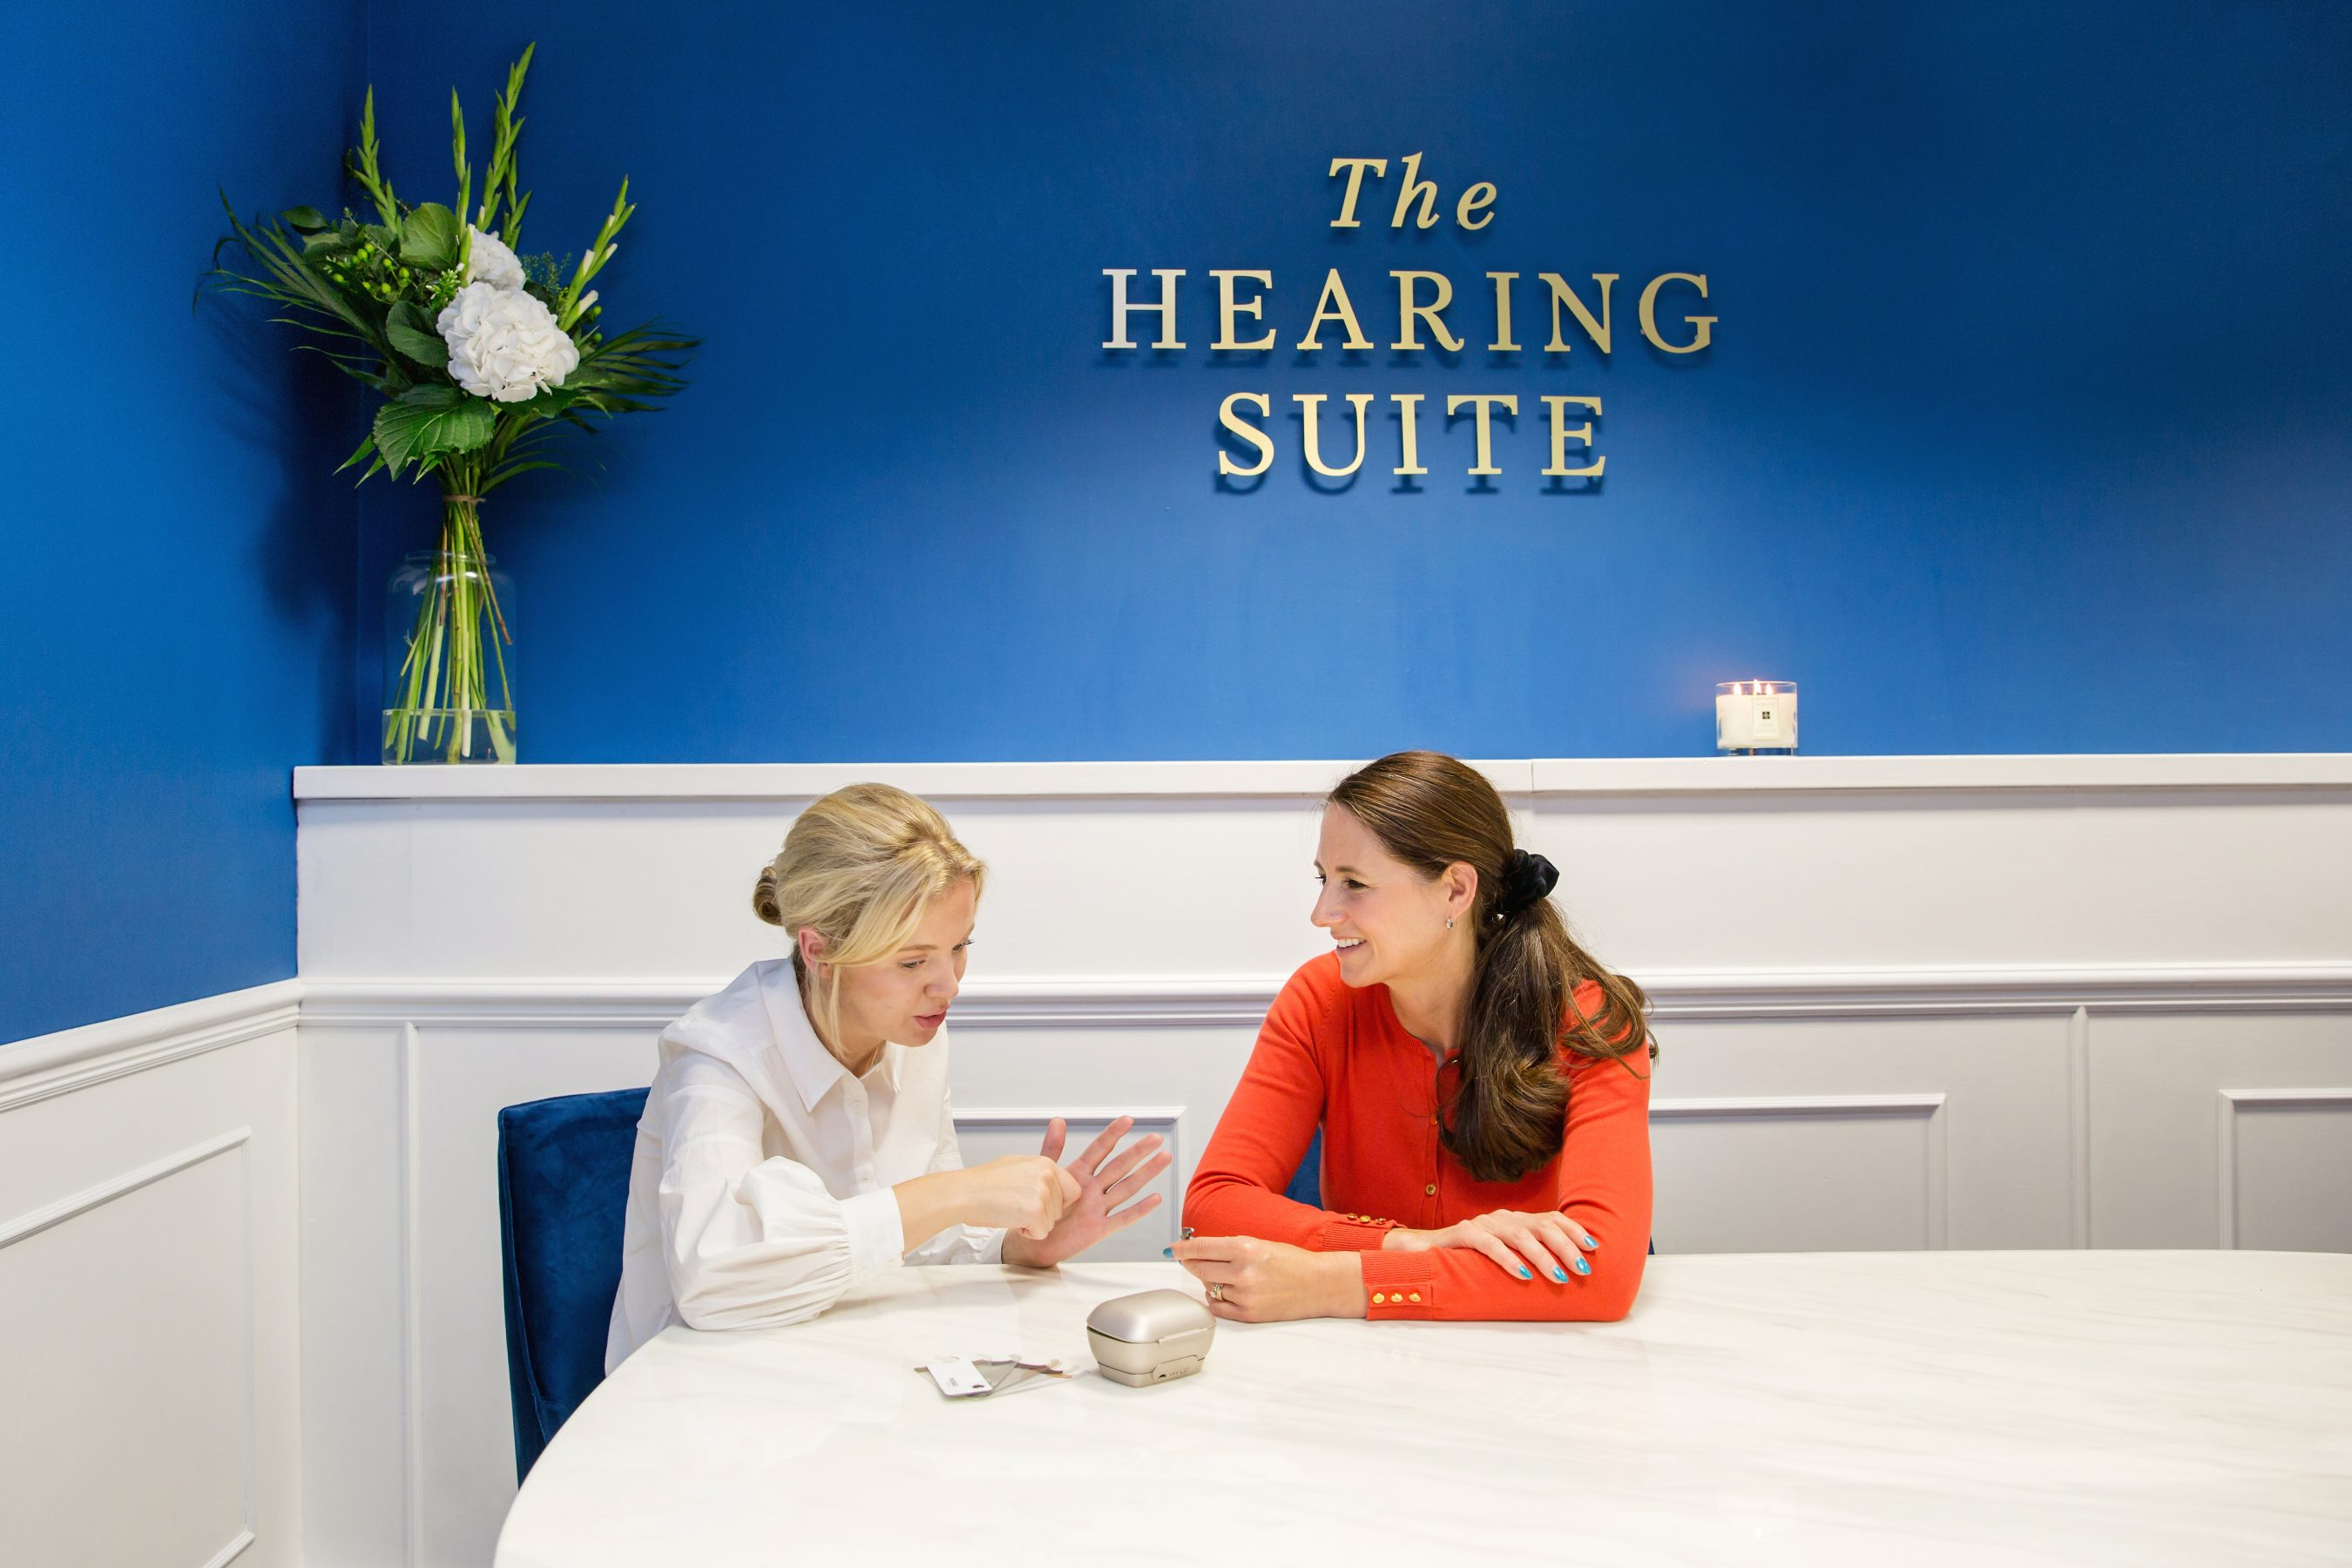 Consultation at The Hearing Suite